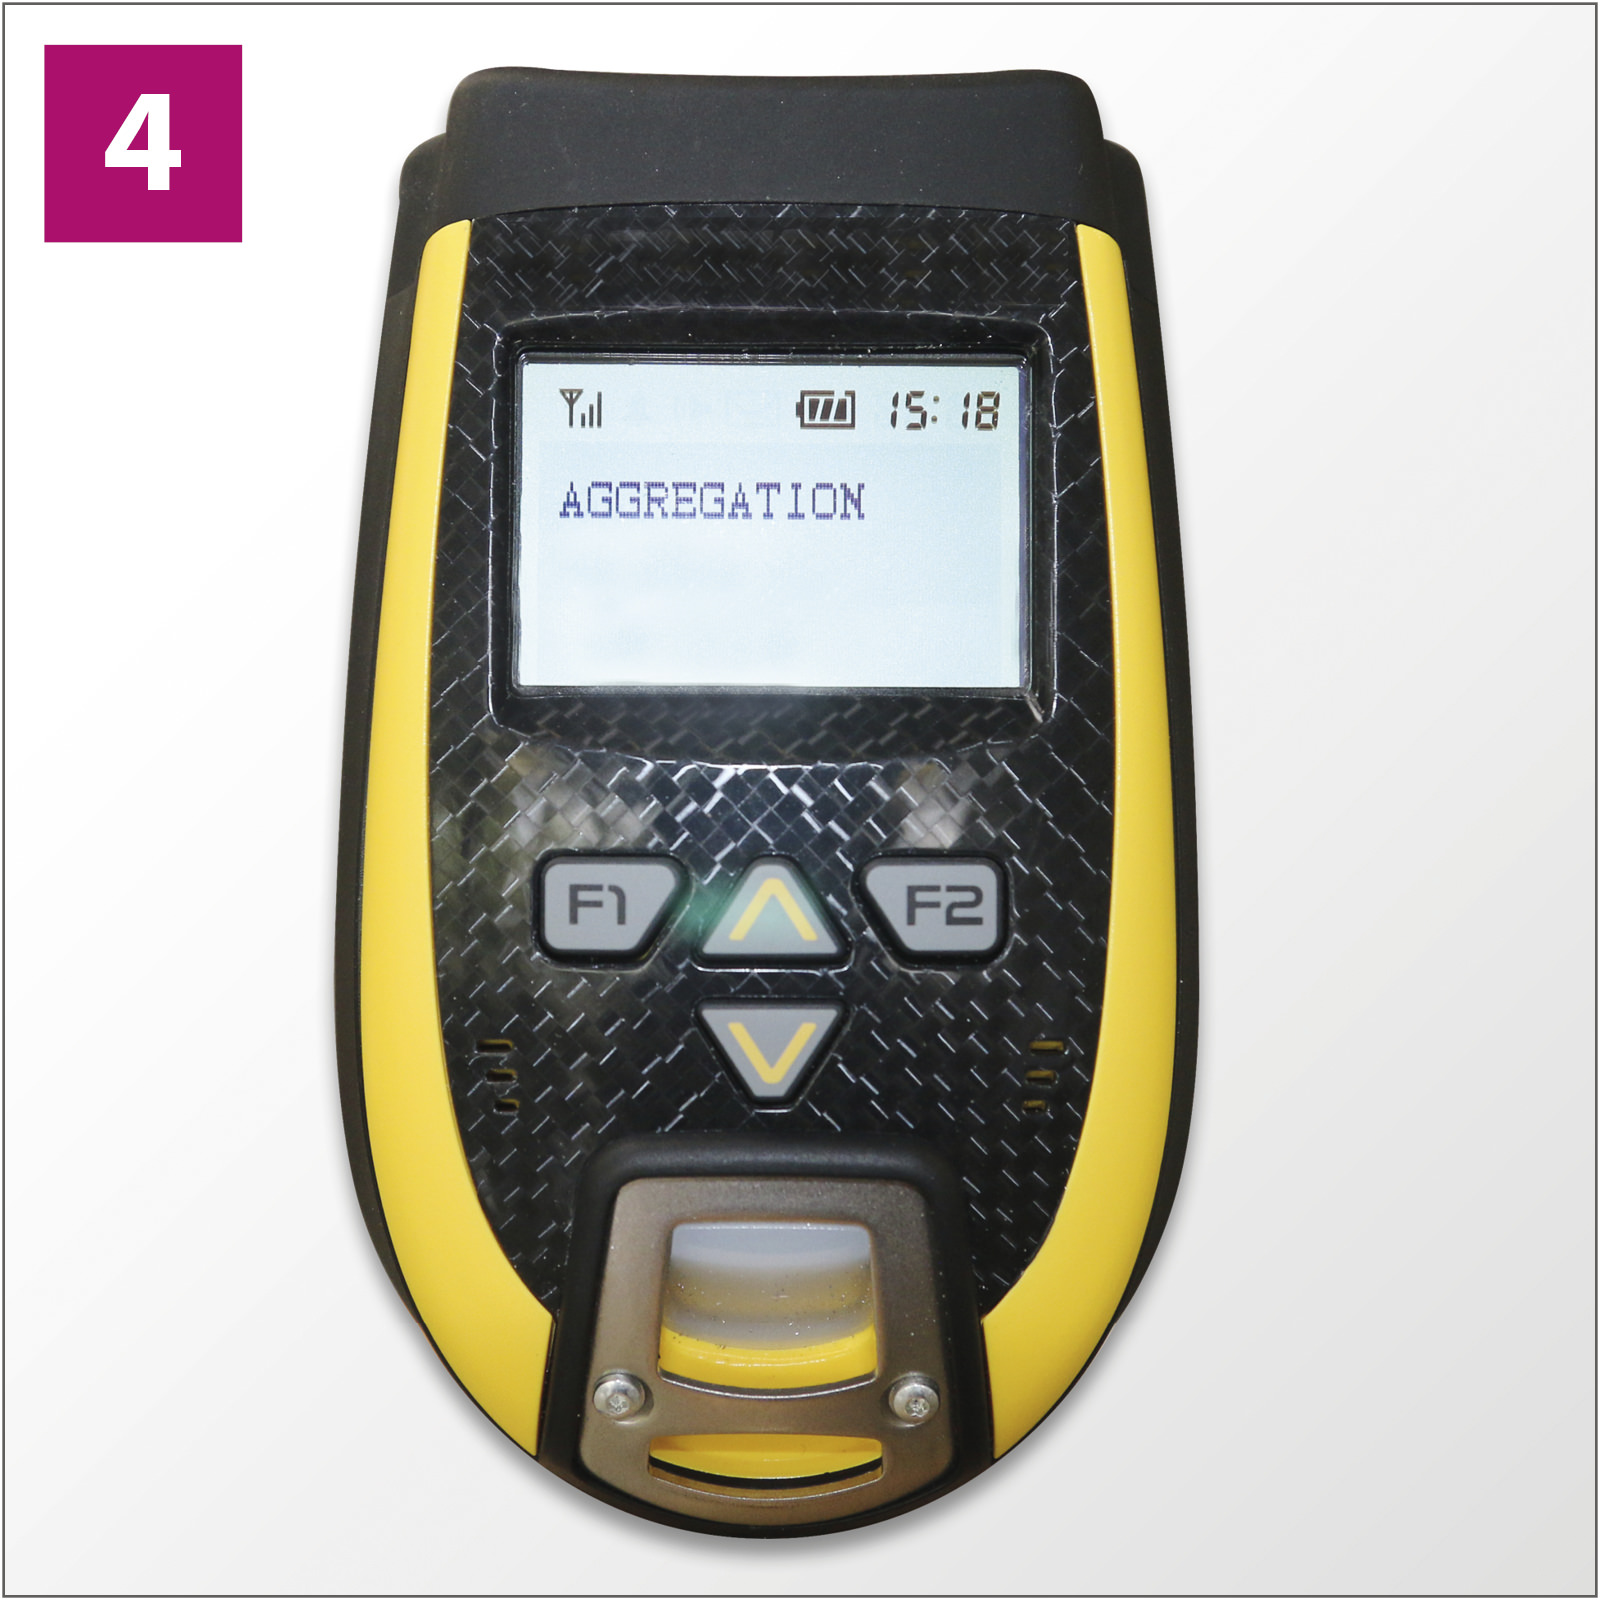 Track and Trace: OEM component wireless handheld scanner